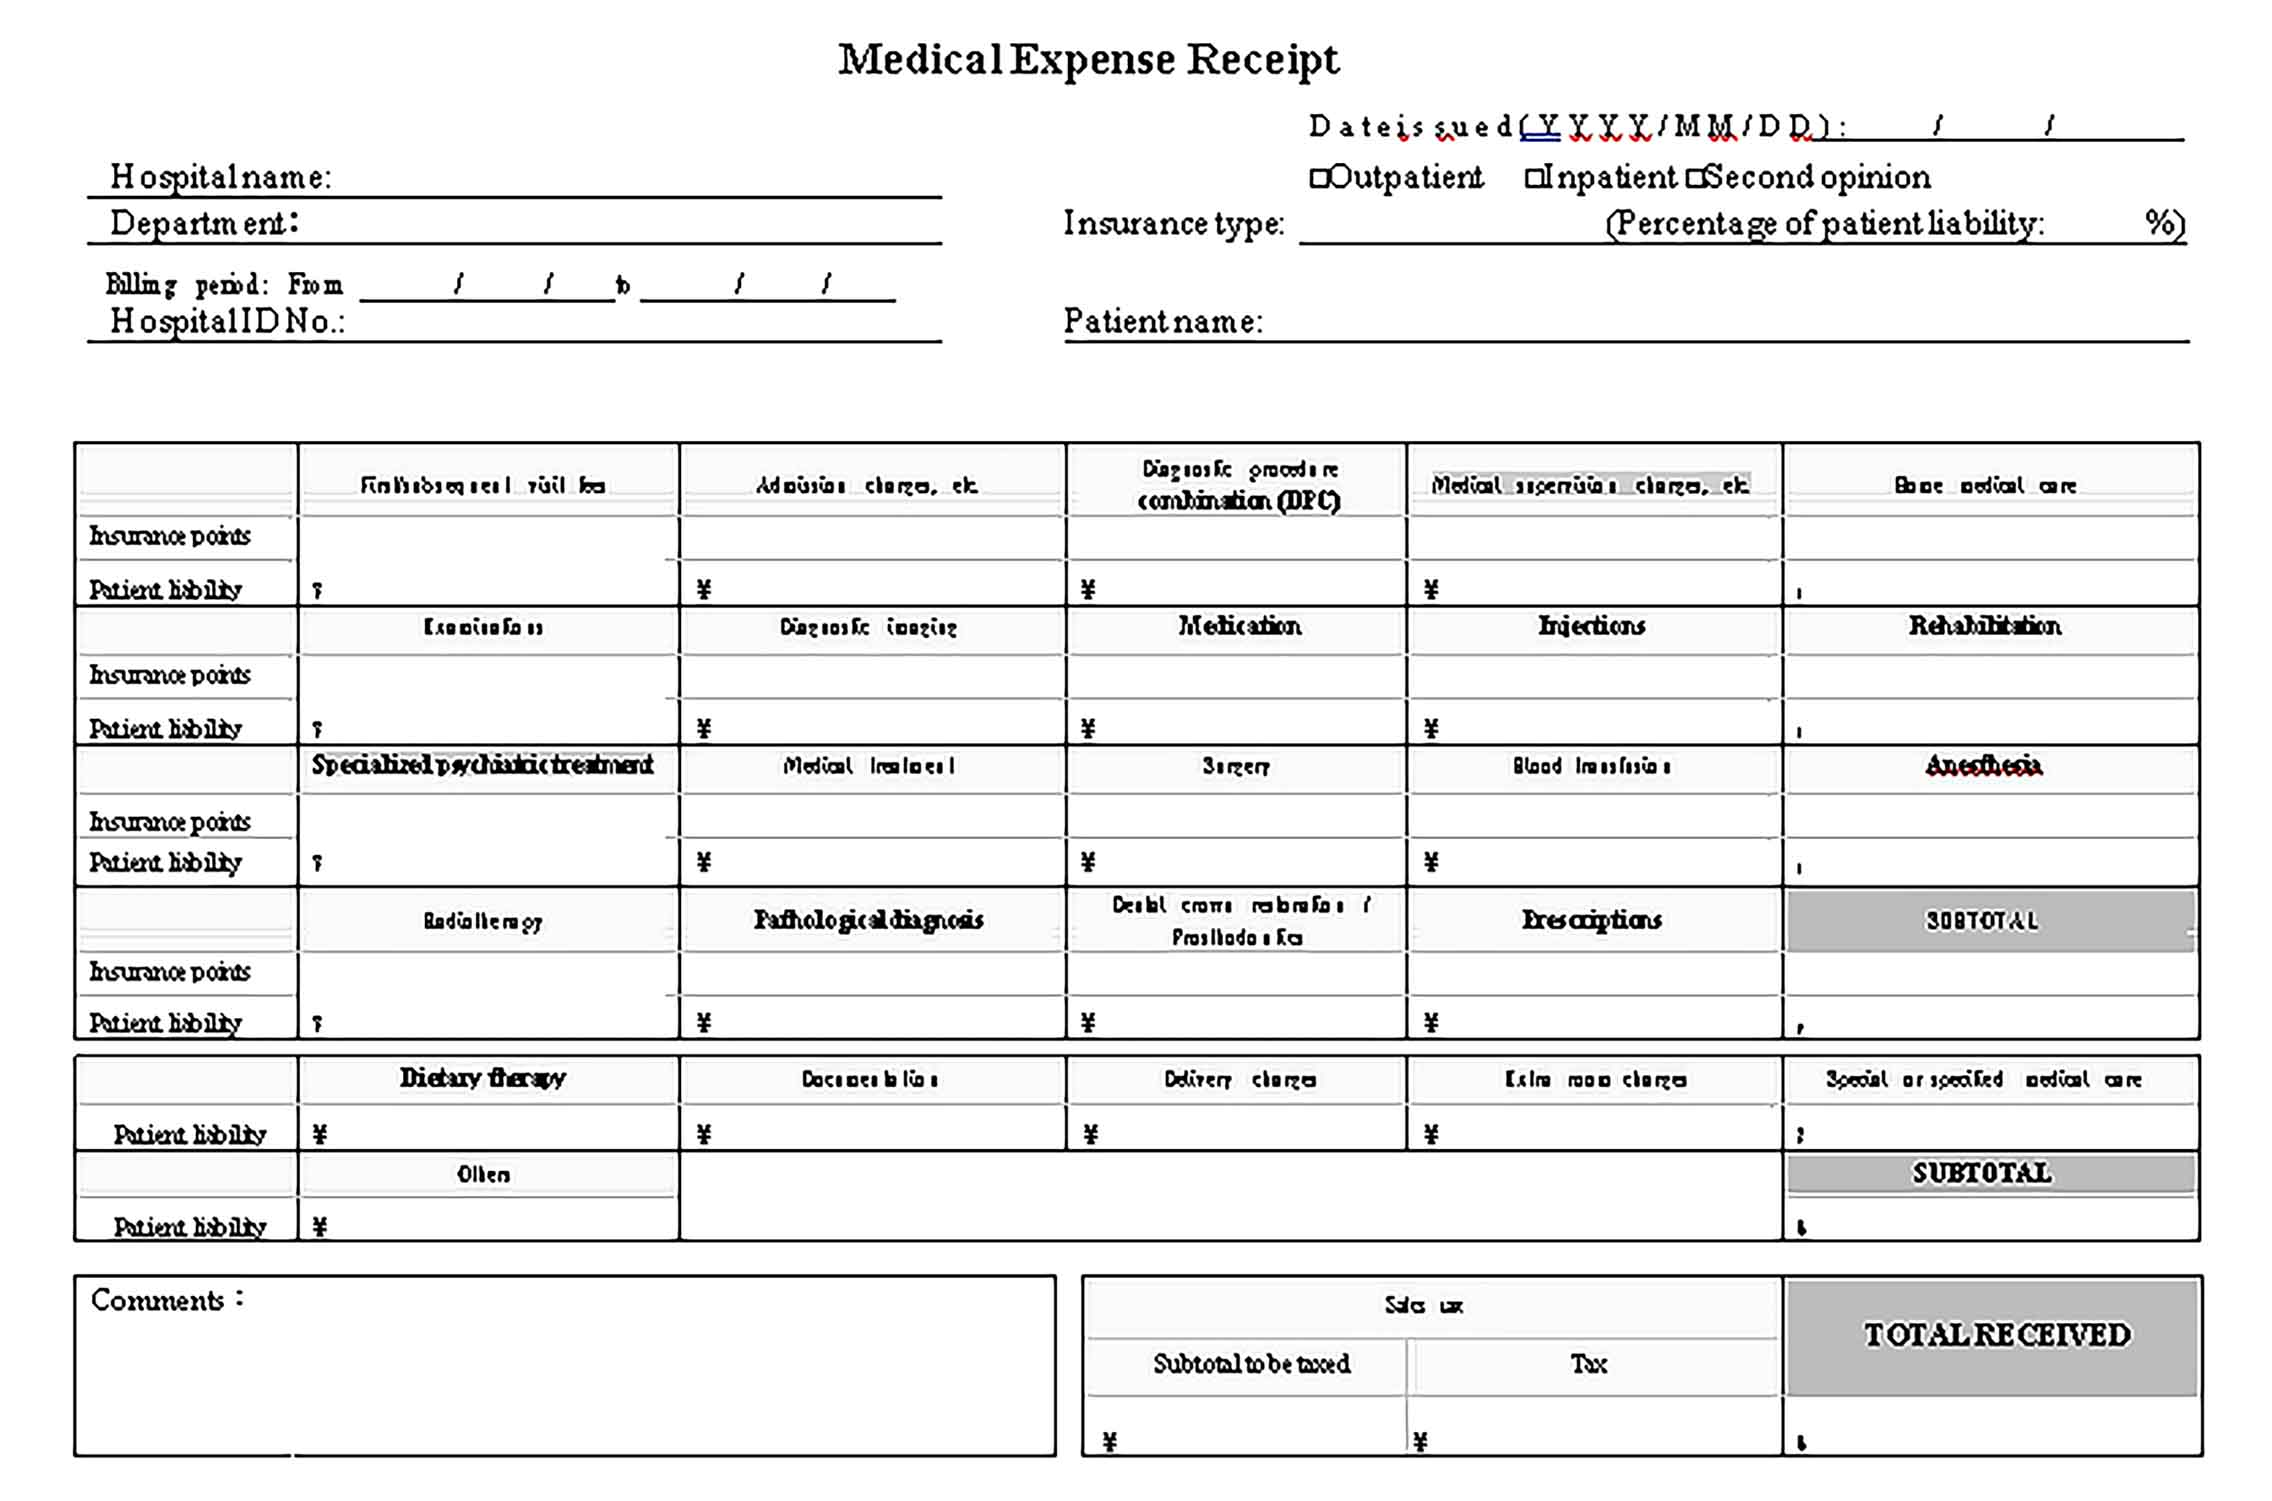 Sample Medical Expense Receipt Templates 1